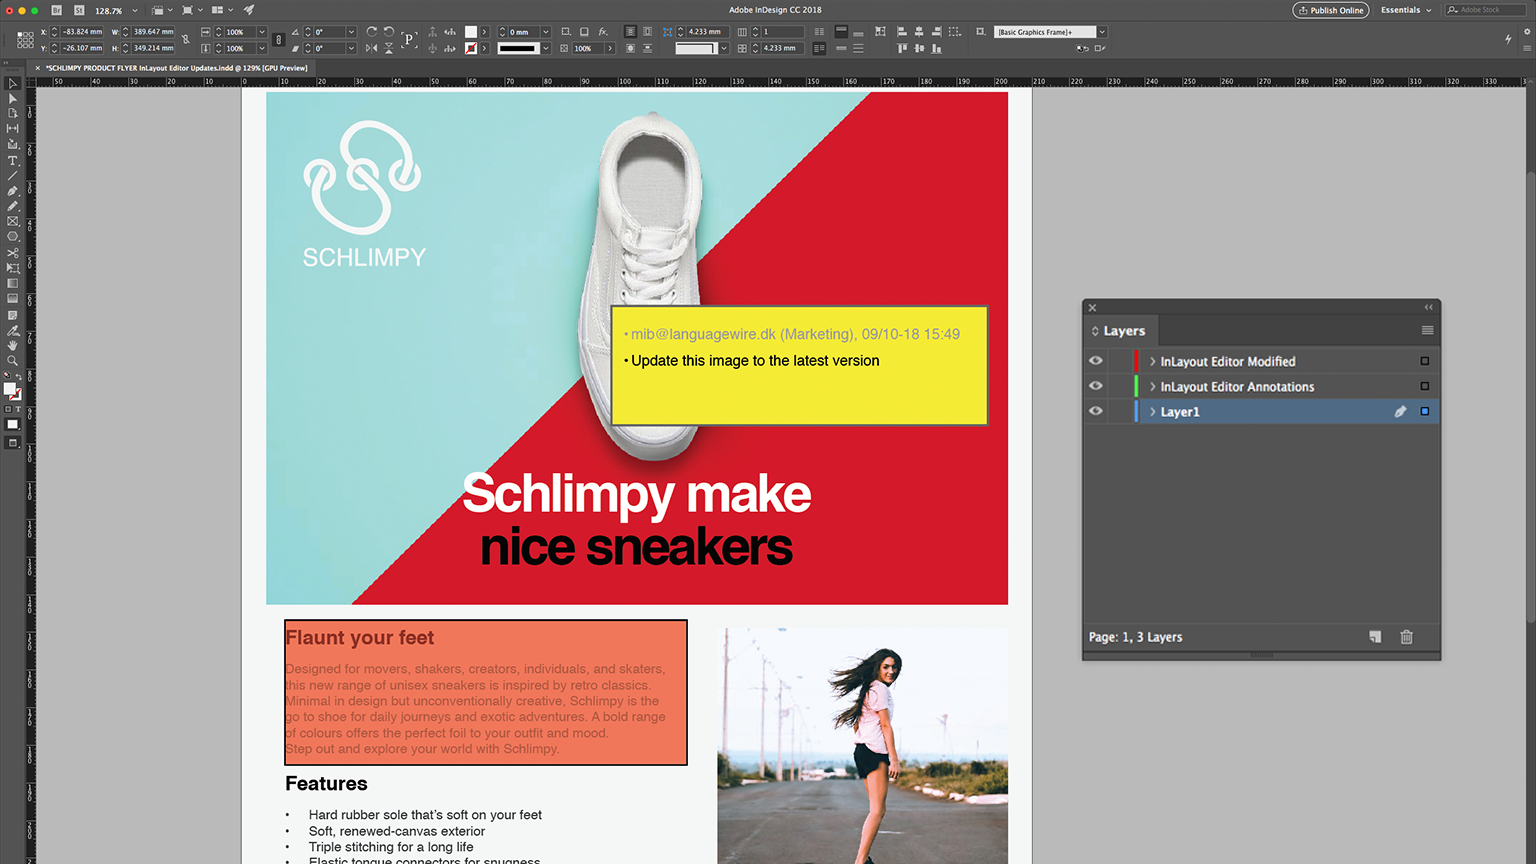 Visning av InDesign i InLayout Editor